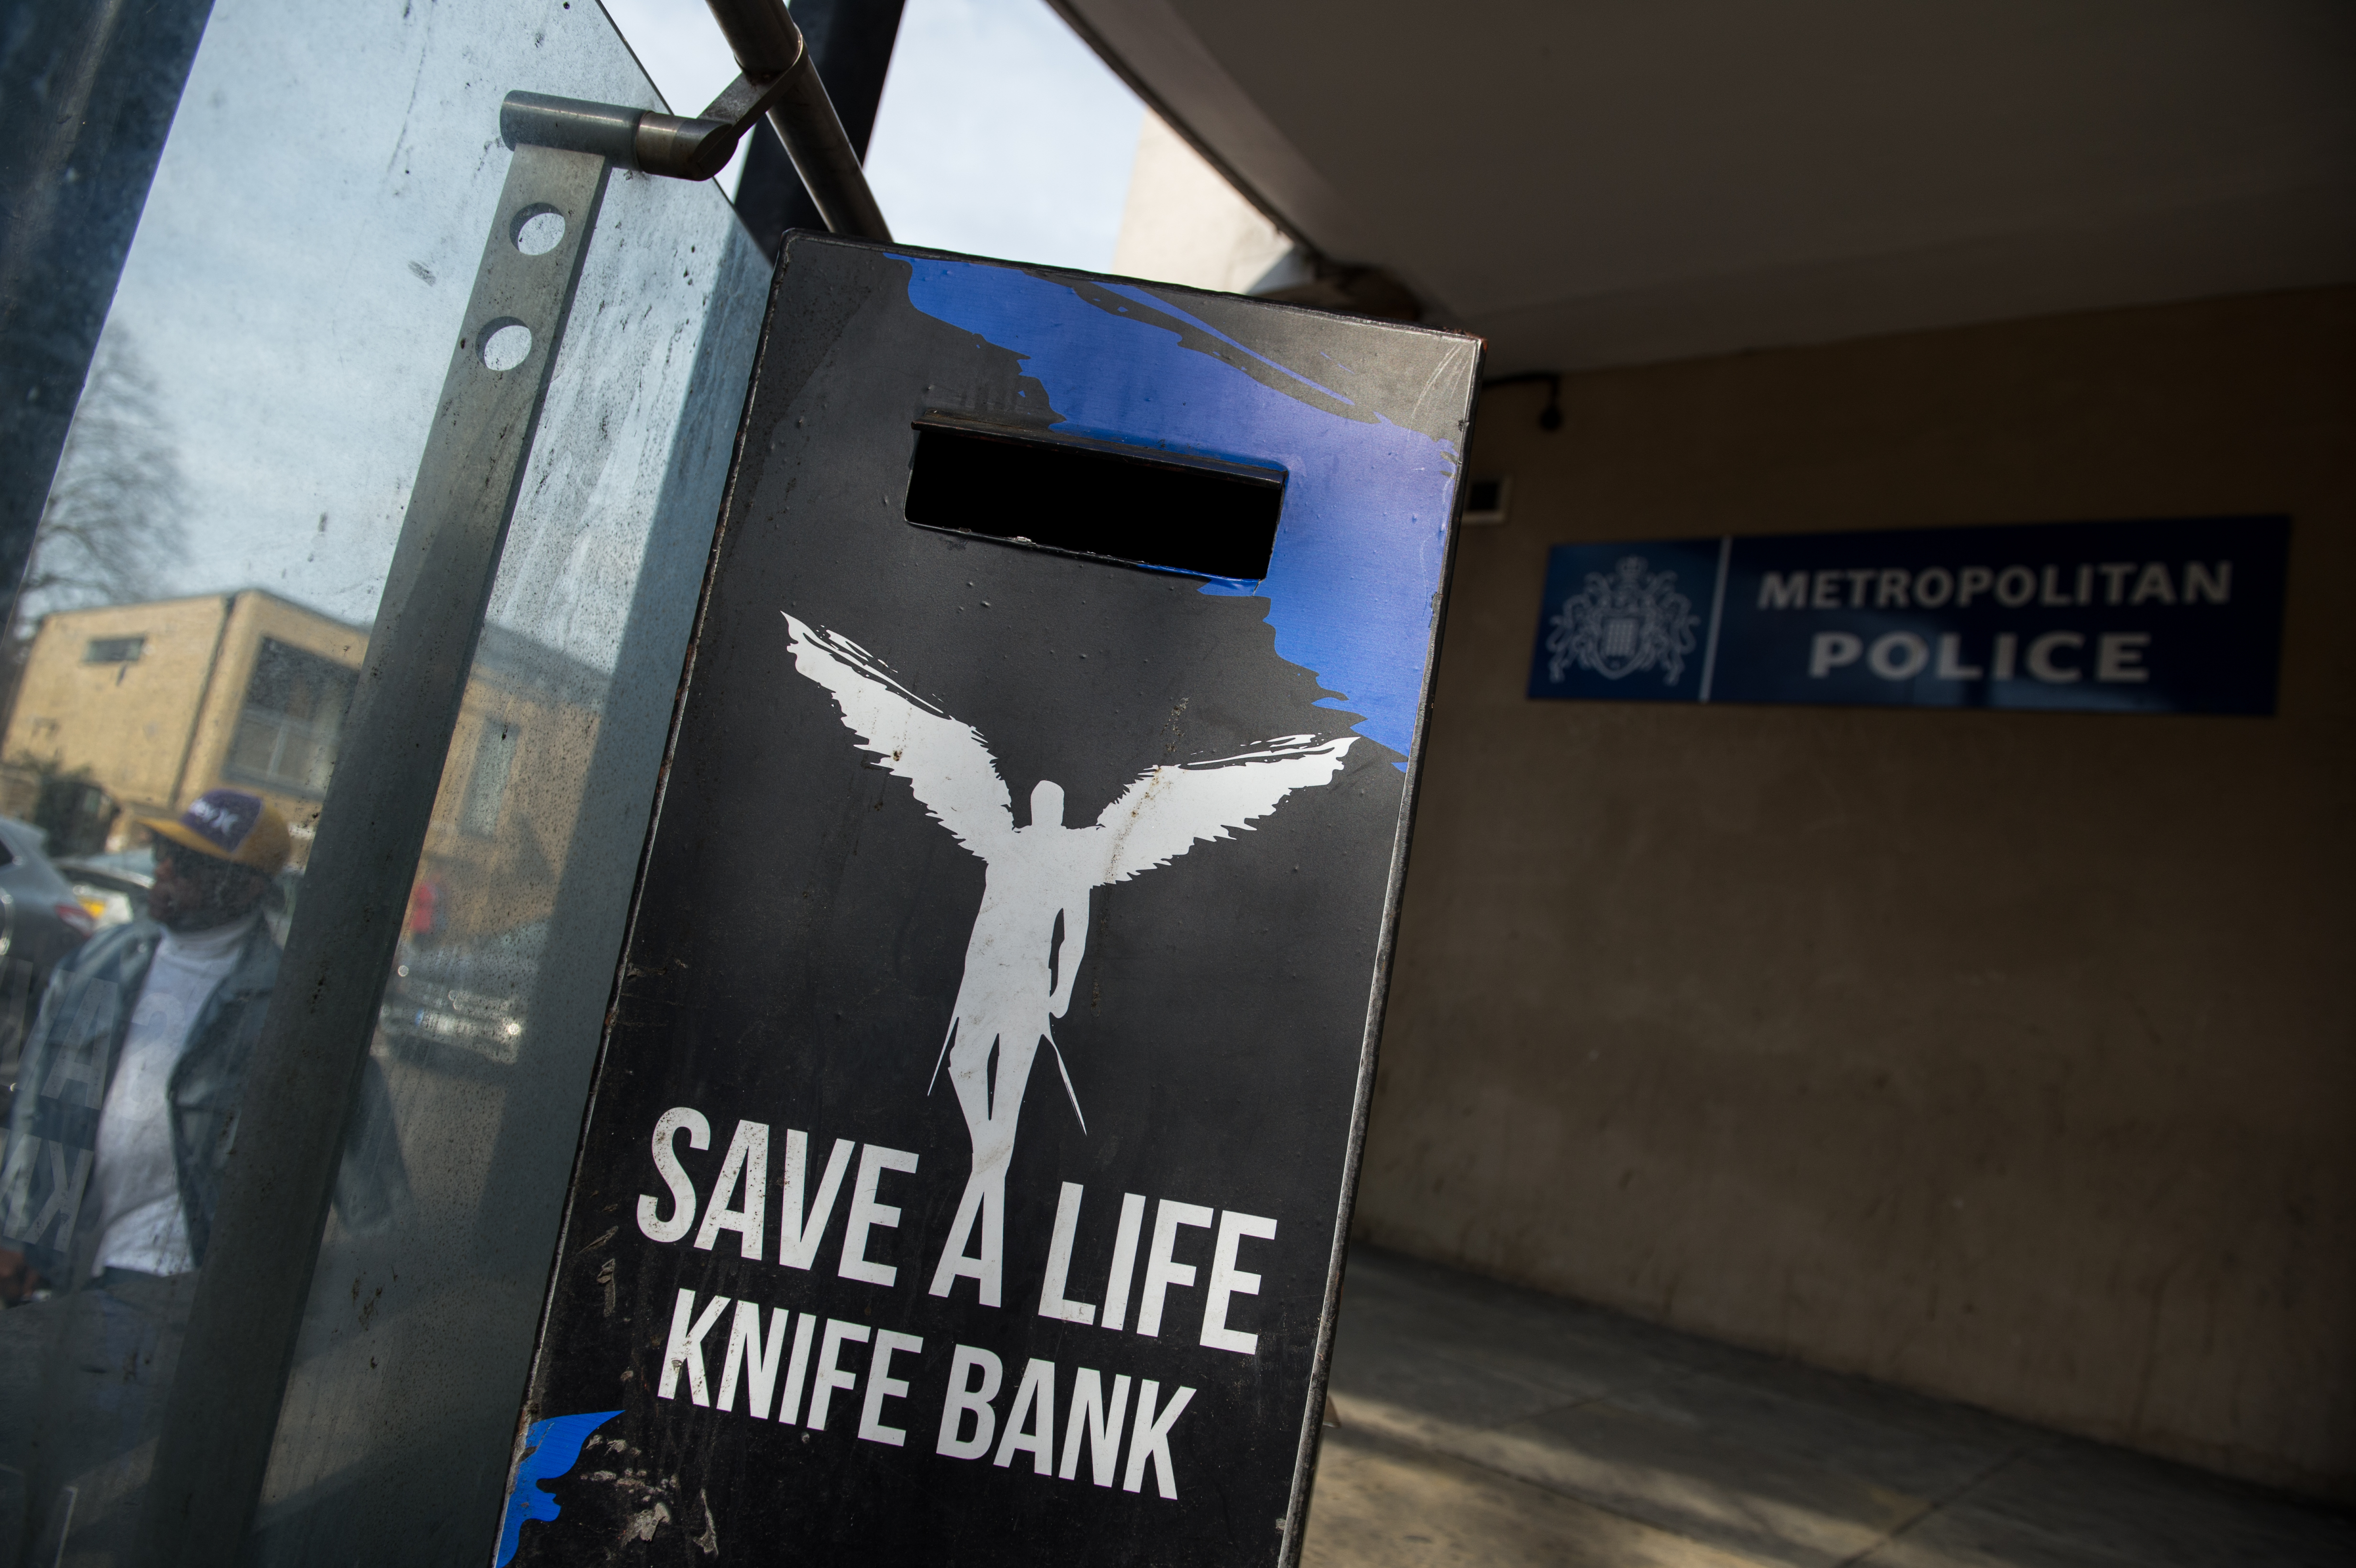 A knife bank is seen outside Brixton police station, as extra police officers have been deployed after a recent rise in killings in the capital on April 7, 2018 in London, England. (Photo by Chris J Ratcliffe/Getty Images)